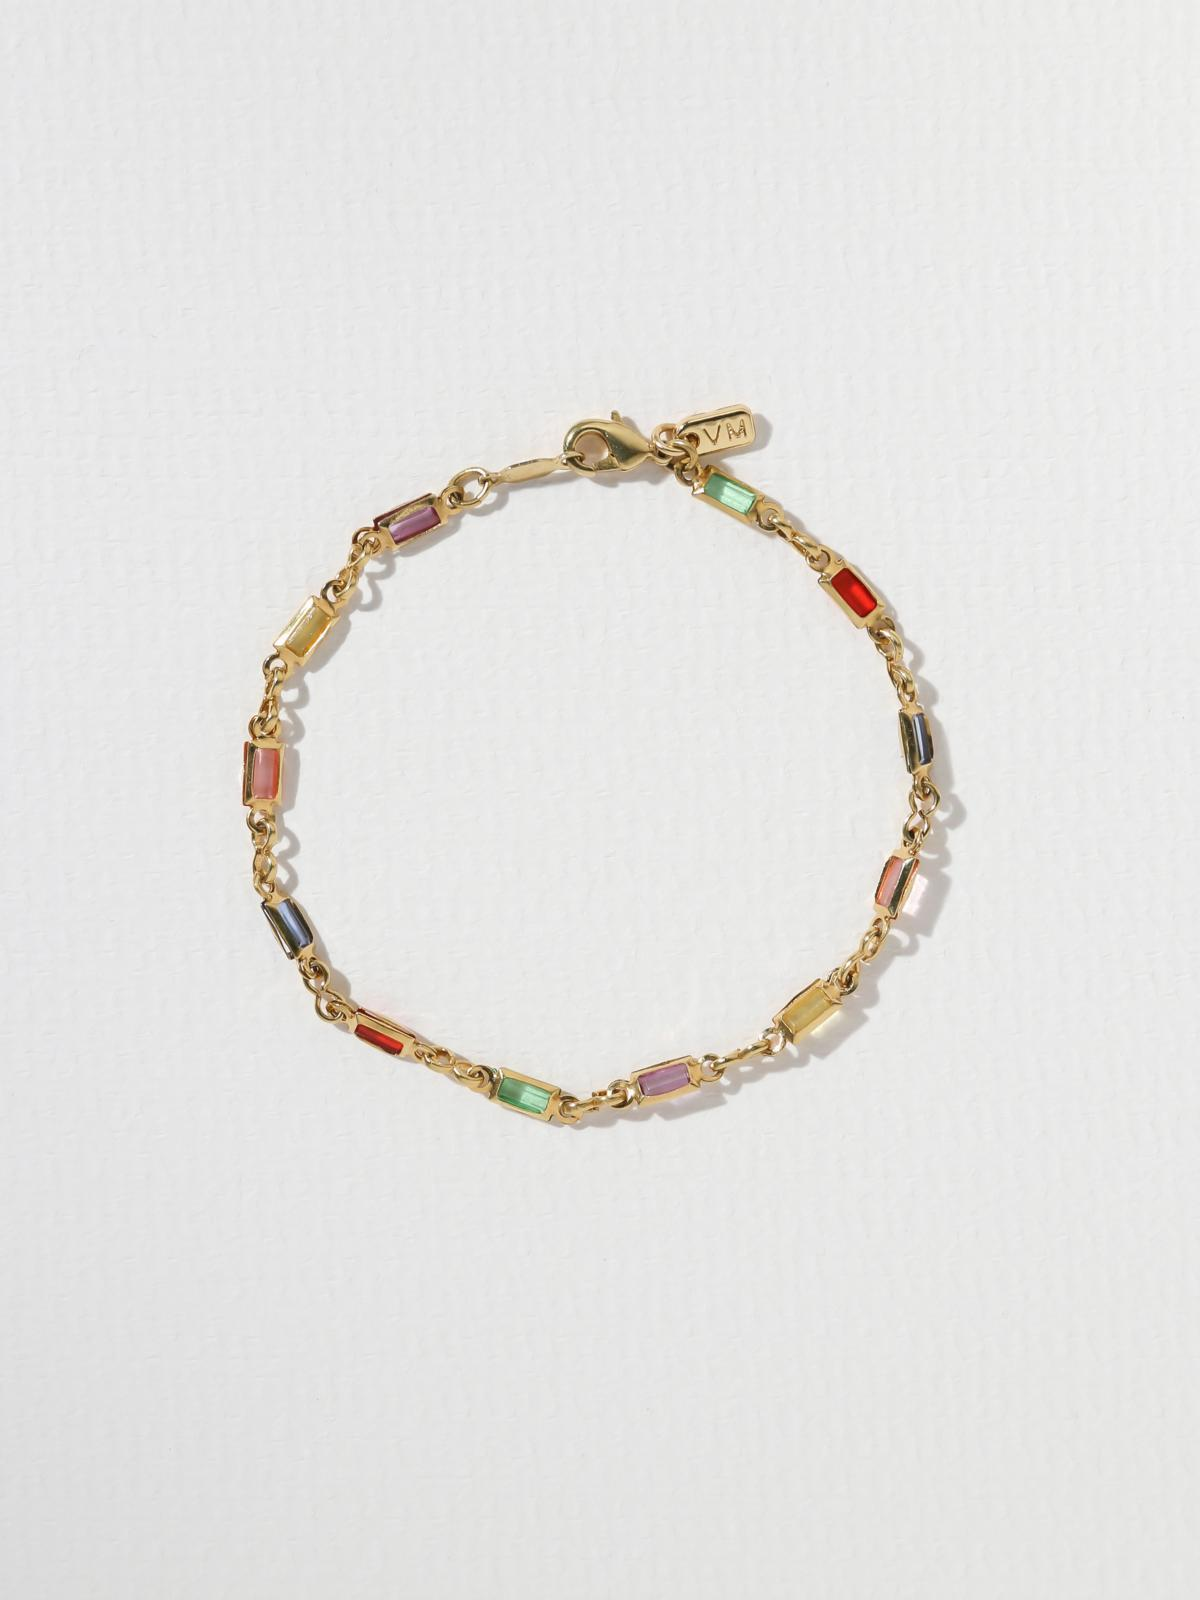 The Divine Gemstone Bracelet